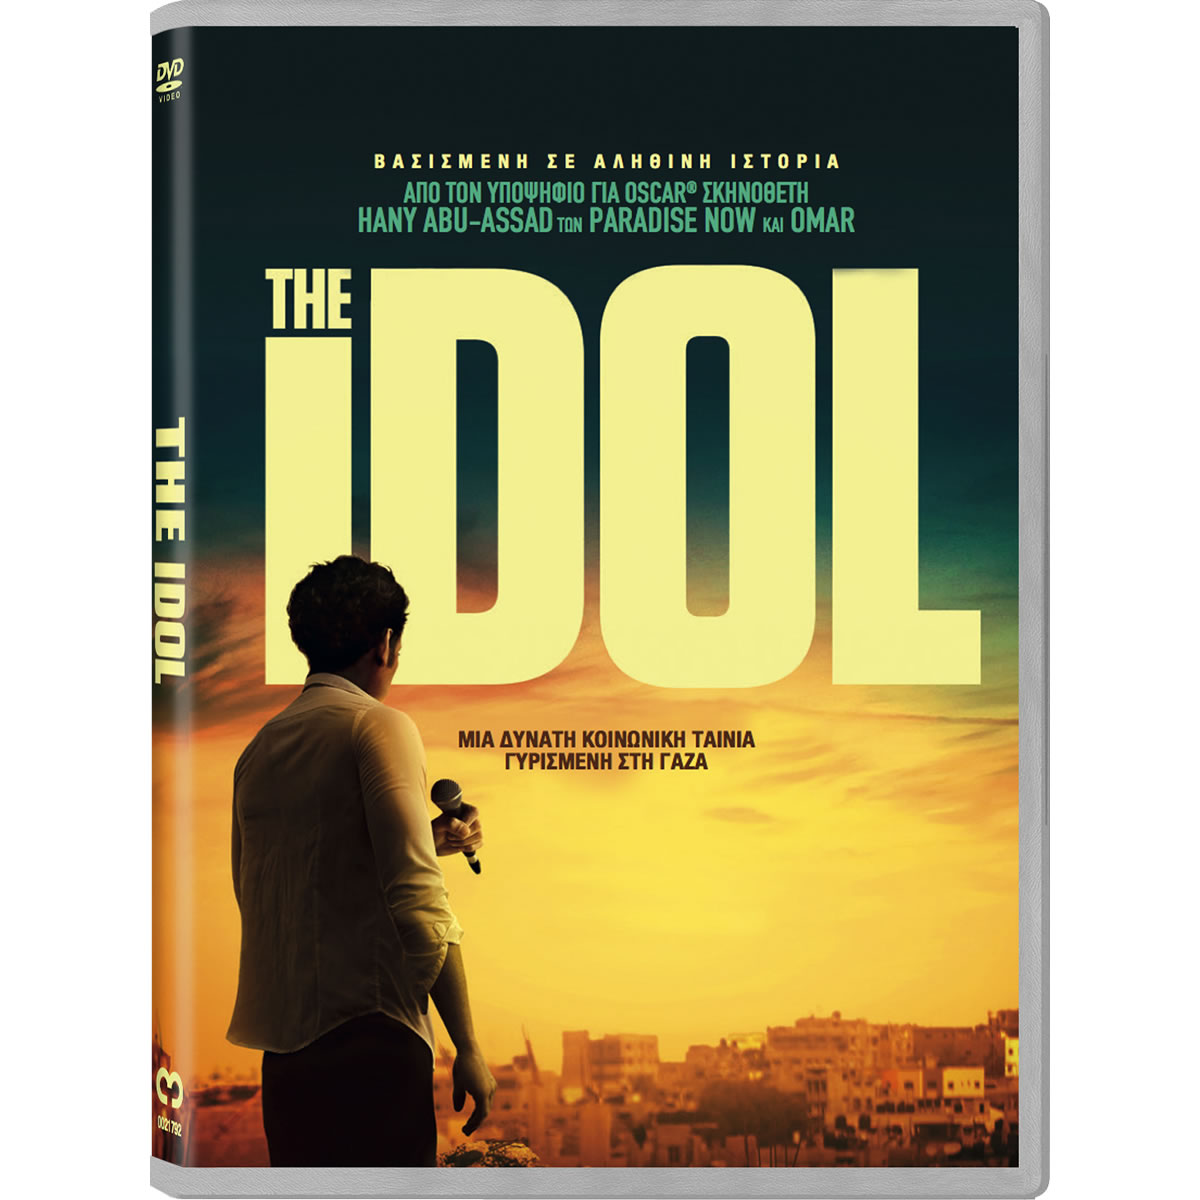 IDOL aka Ya tayr el tayer (DVD)